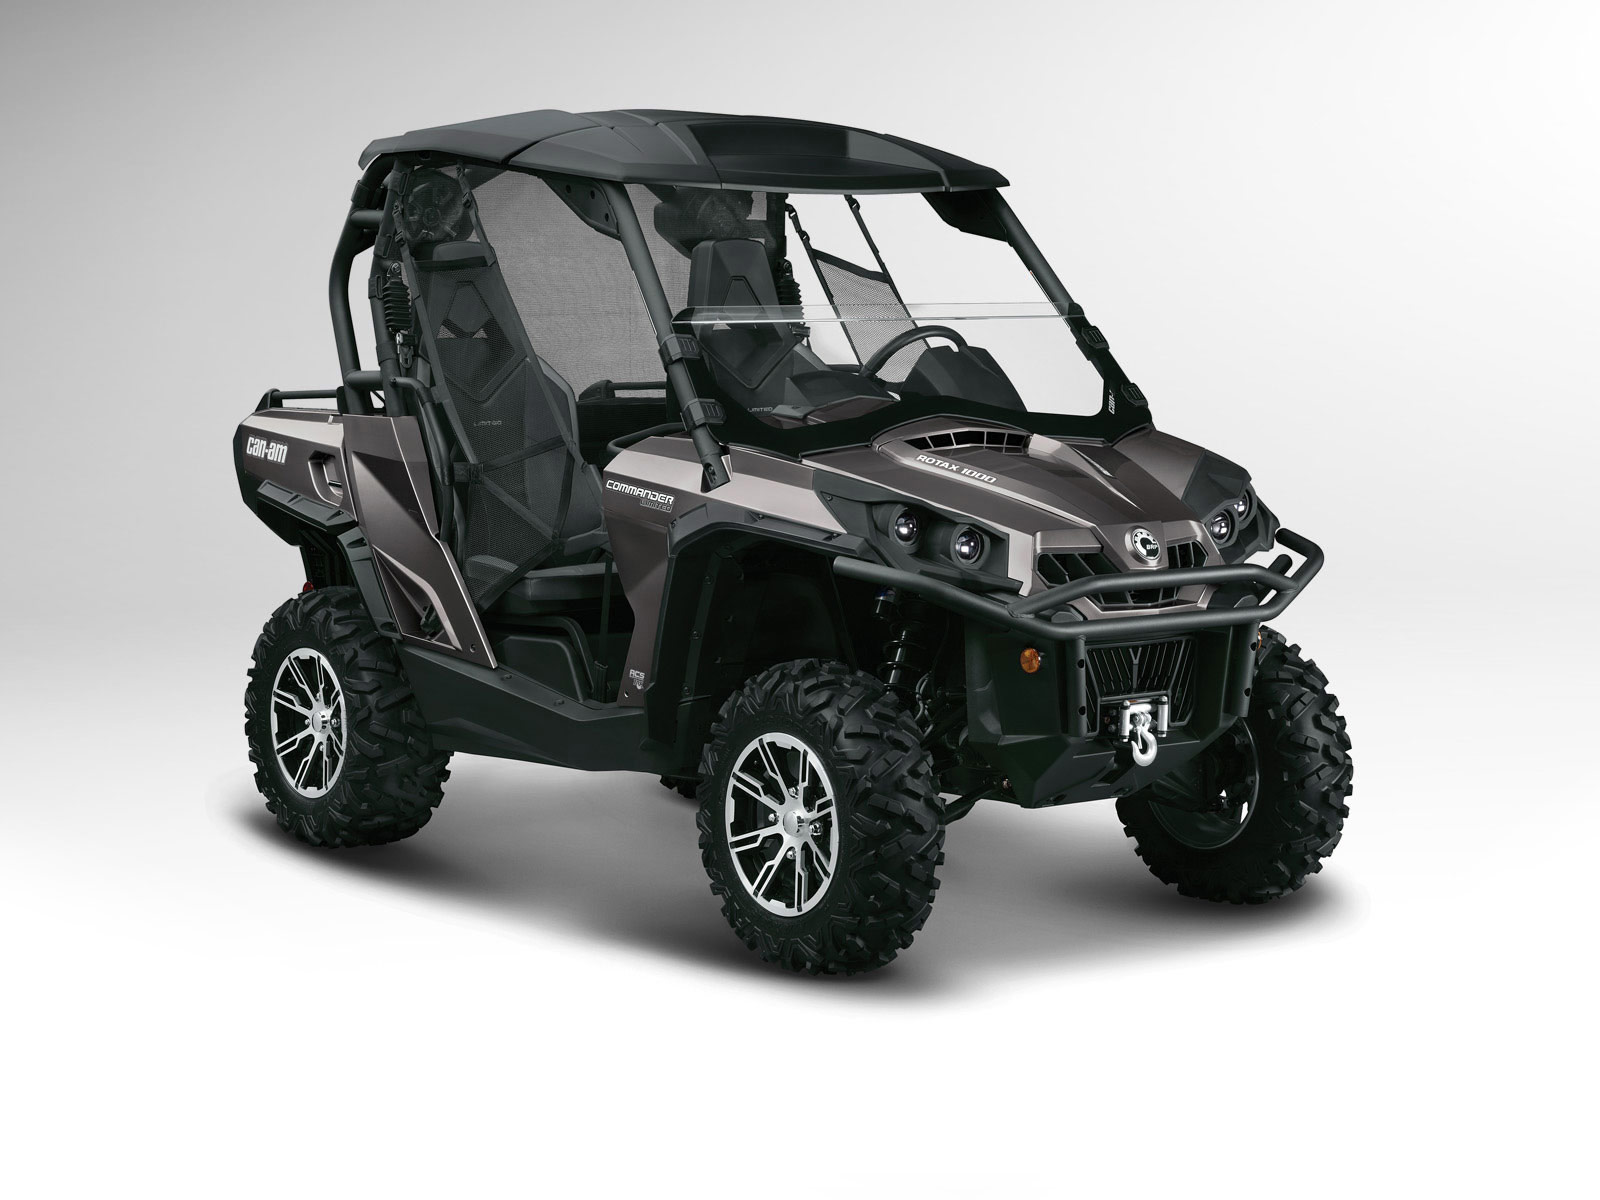 2012 Can-Am Commander 1000 Limited ATV pictures 1